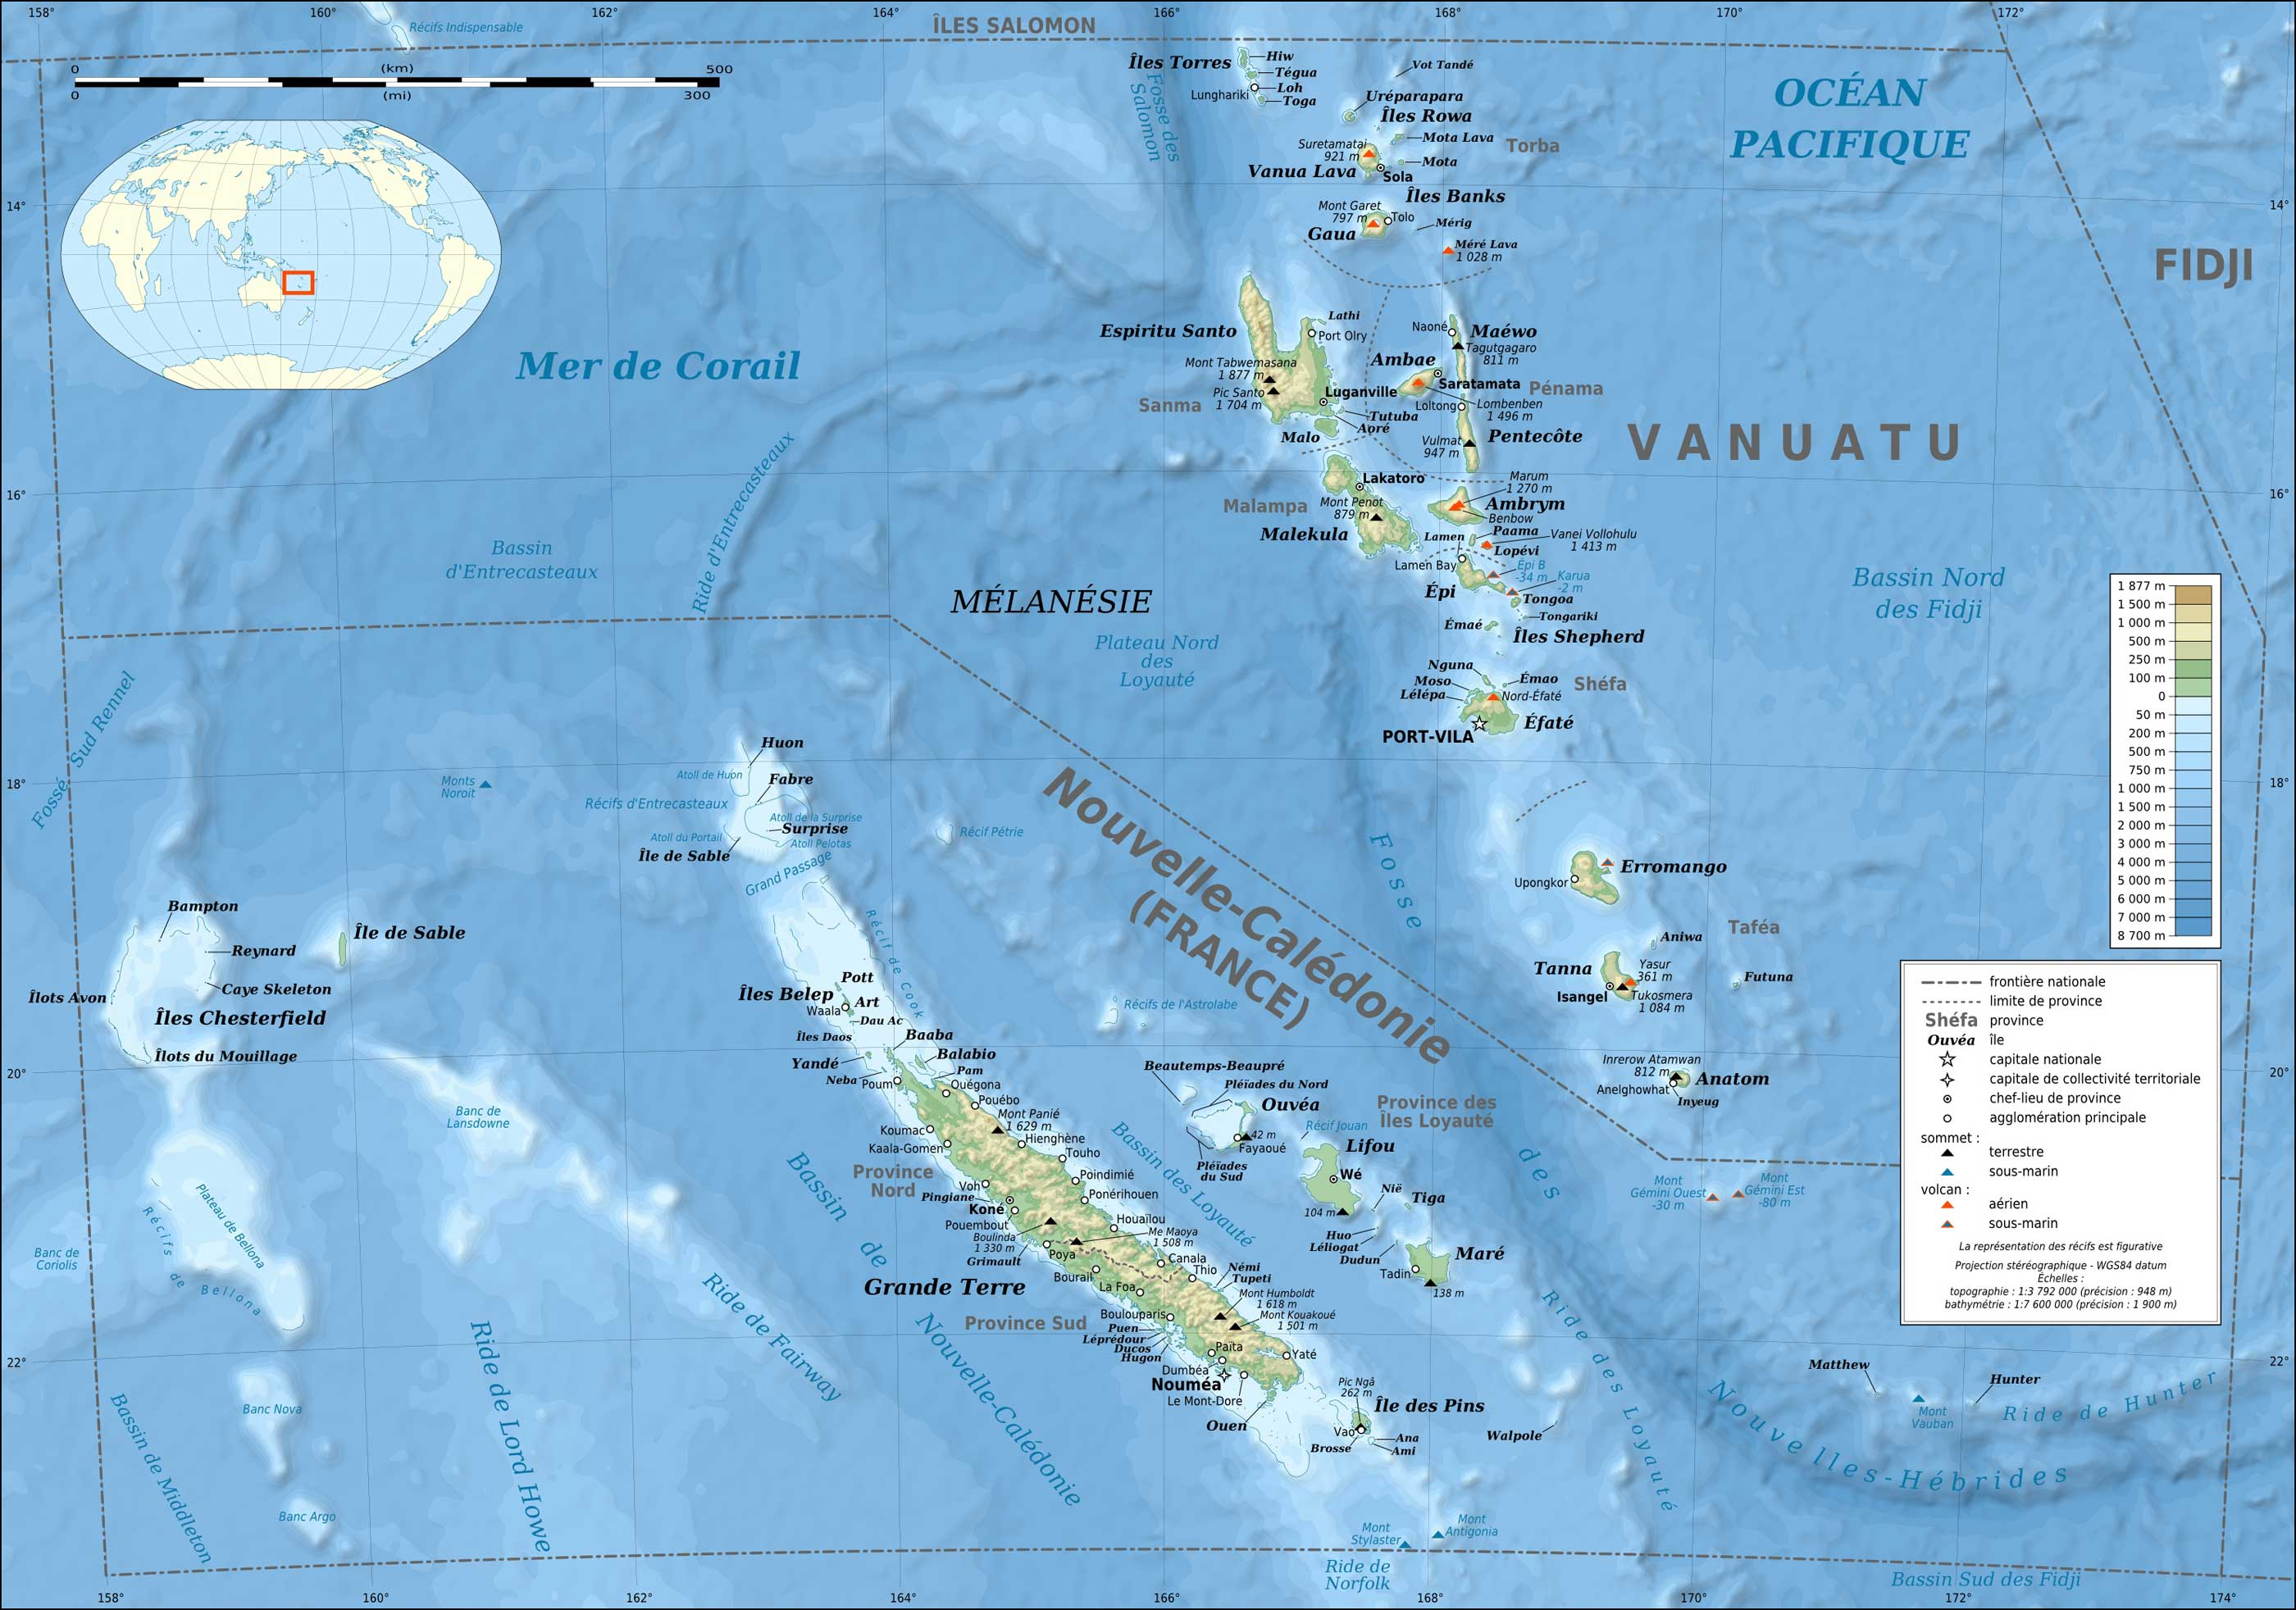 New Caledonia And Vanuatu Bathymetric And Topographic Map Fr large map